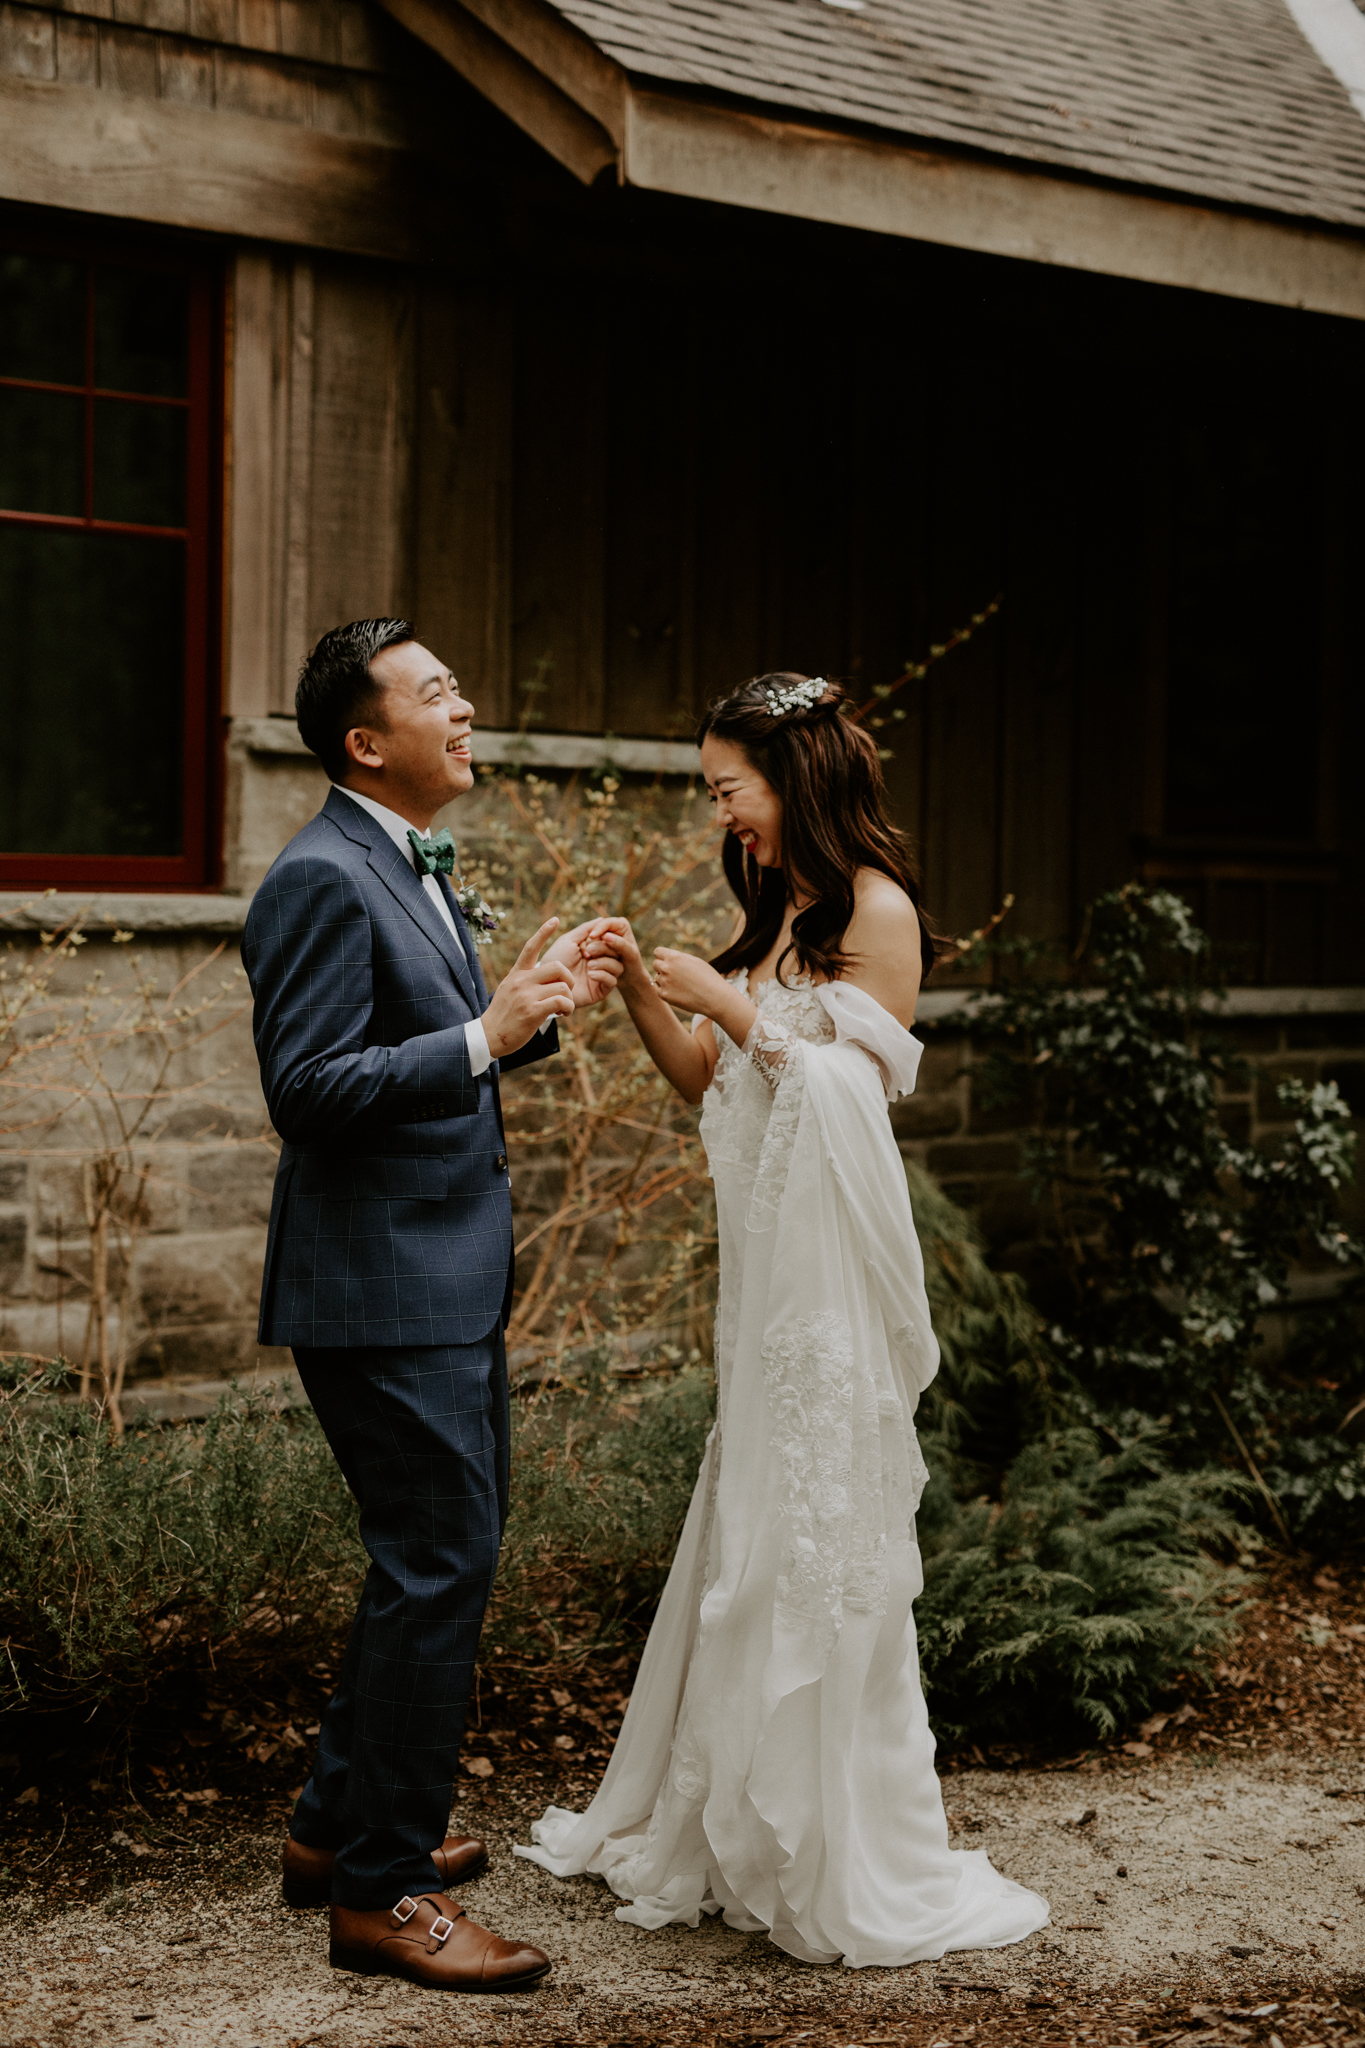 Serenity Cottage Wedding - bride and groom laughing during first look